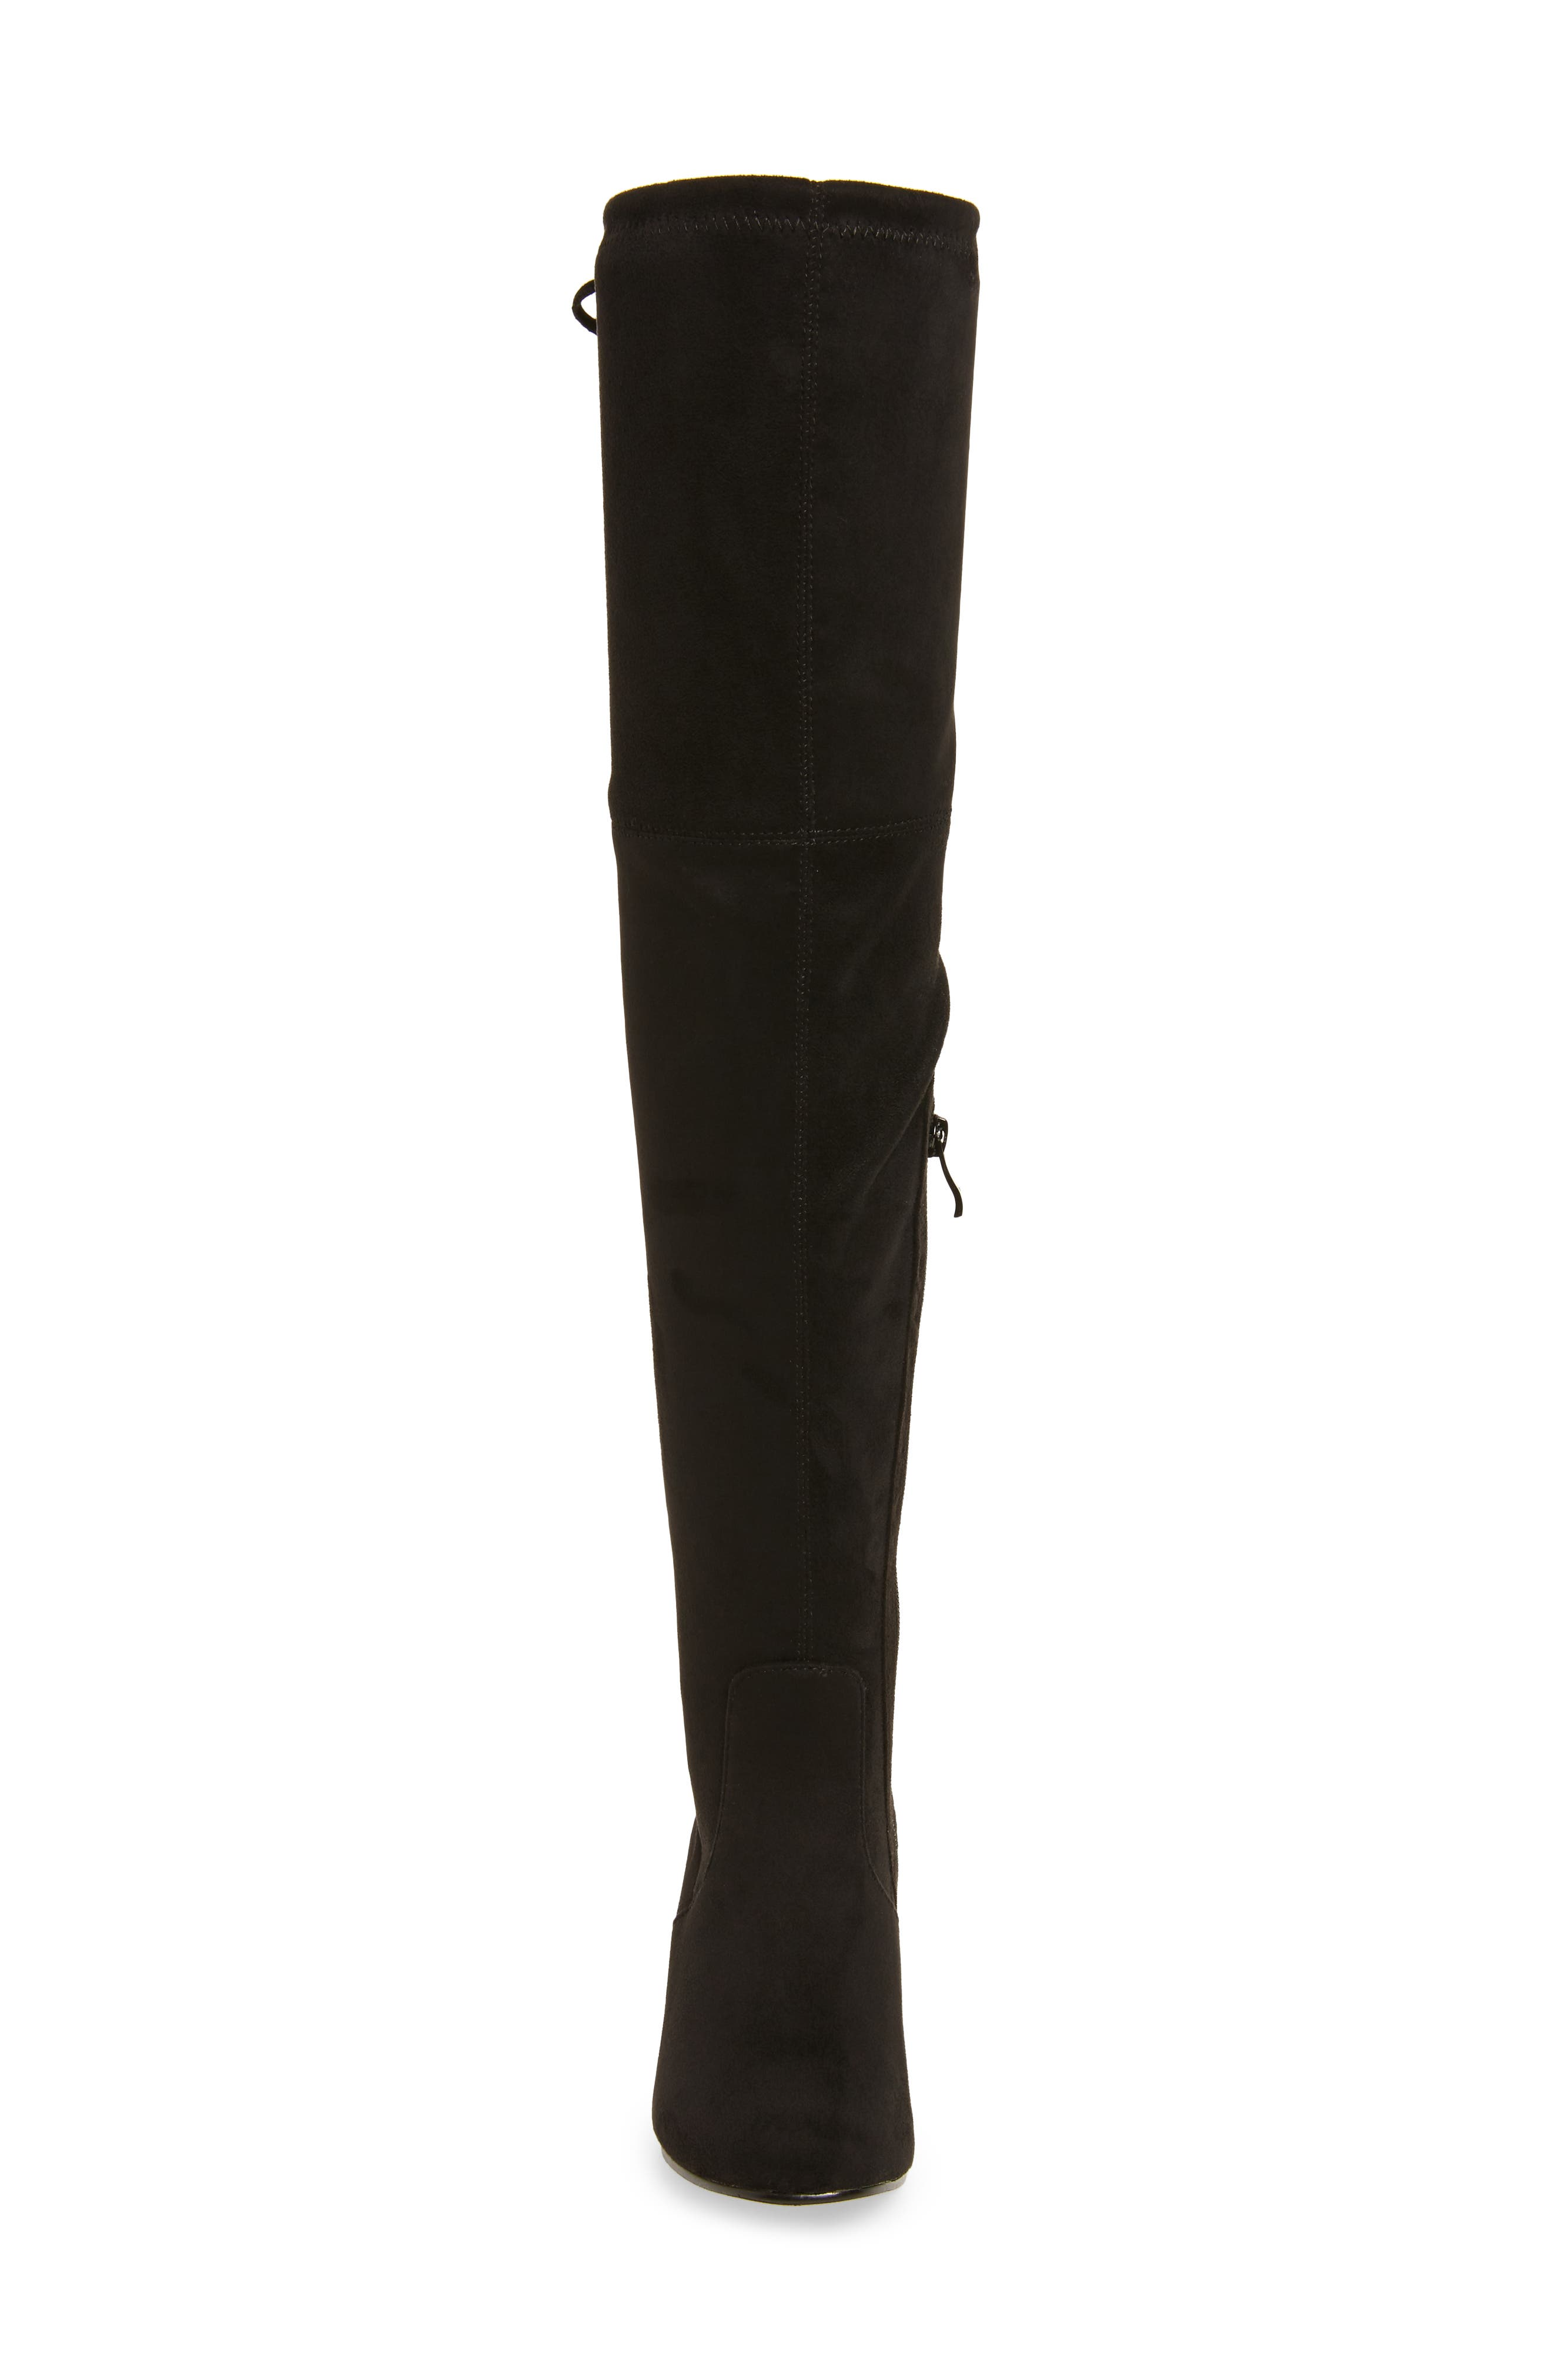 Heartbeat Over the Knee Boot,                             Alternate thumbnail 4, color,                             001